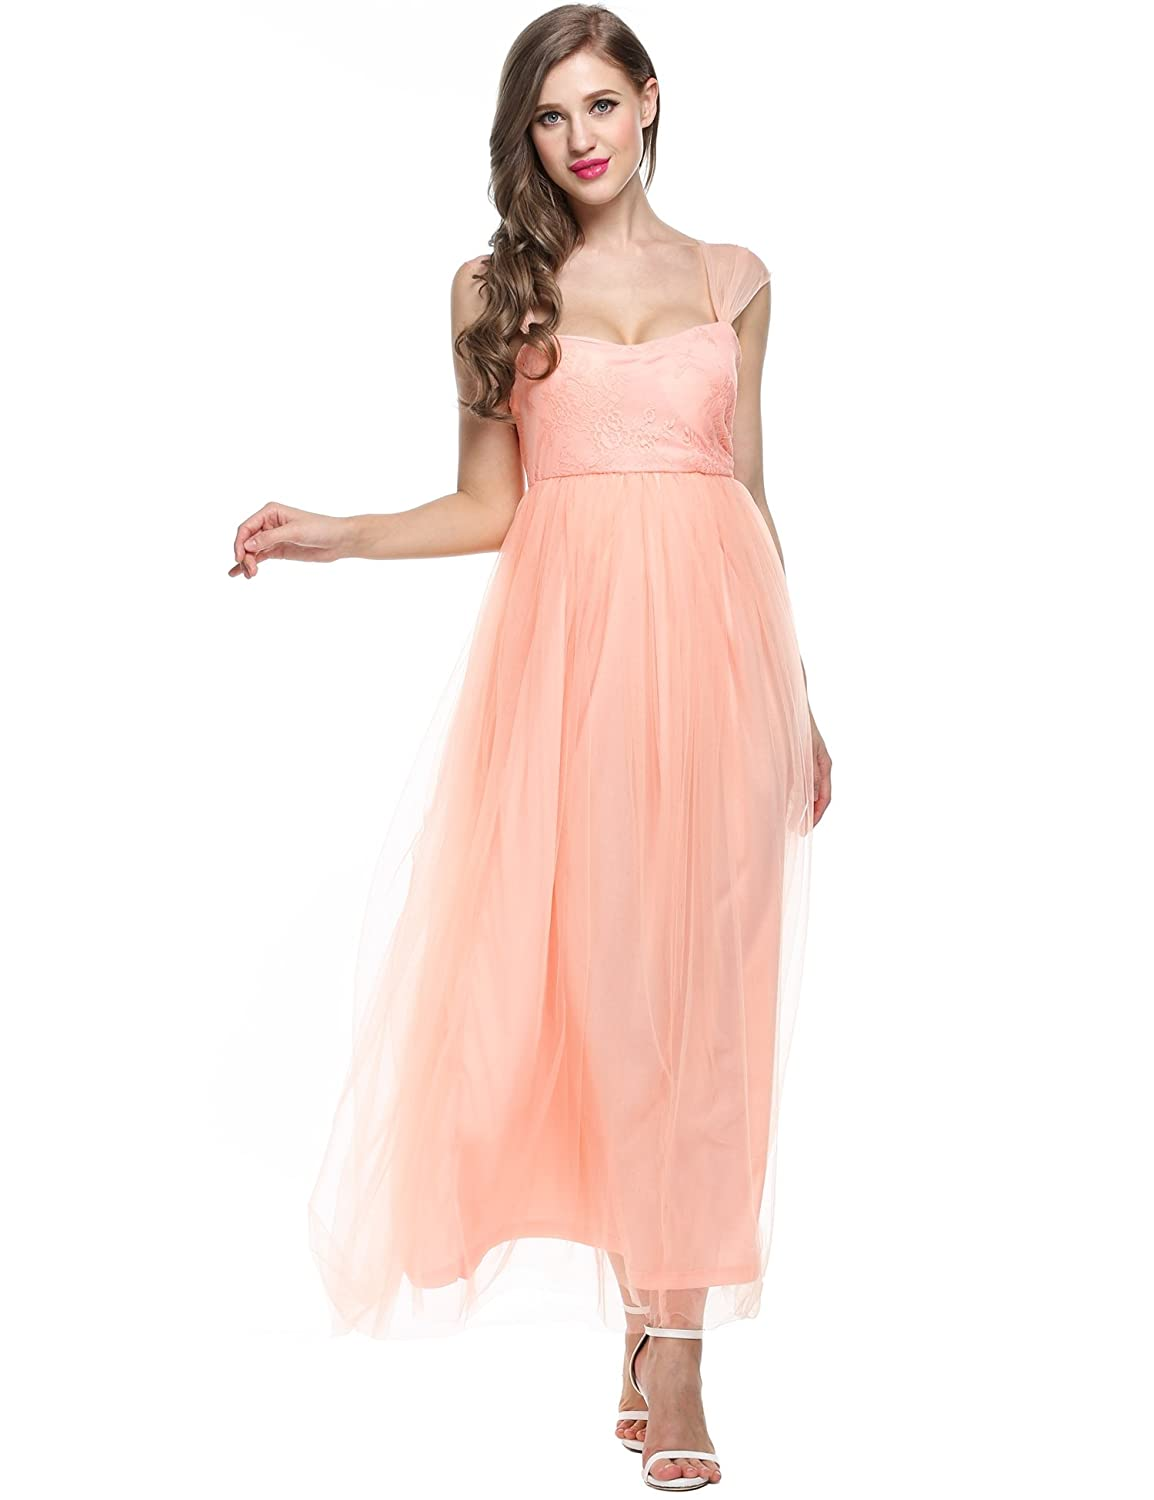 ANGVNS Lace Dress Sweetheart Bridesmaid Dress Long Evening Gown